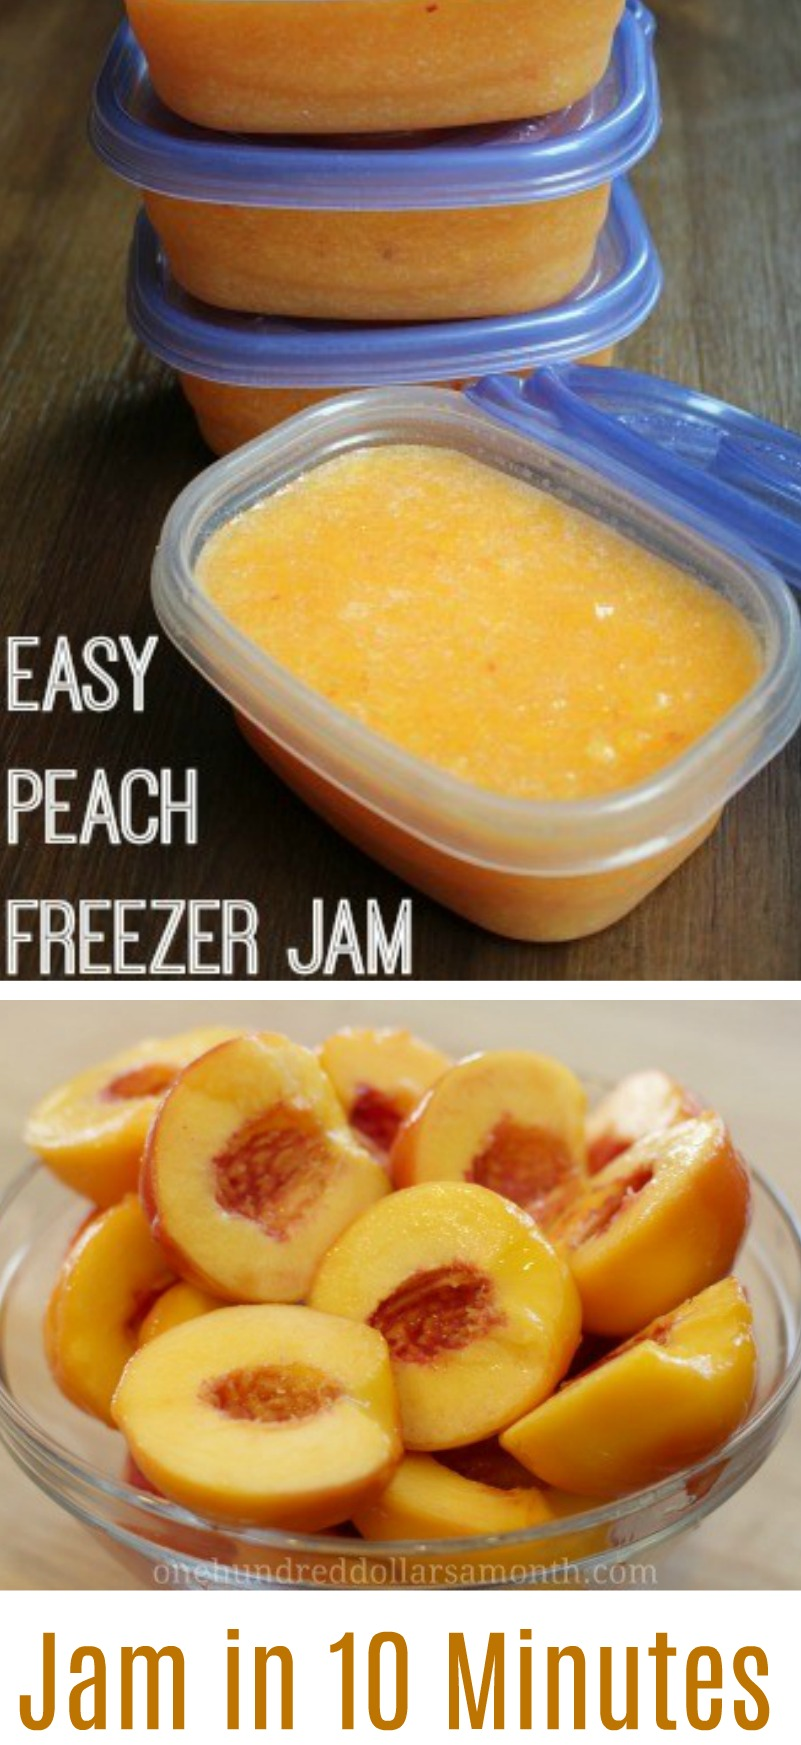 Fast and Easy Peach Freezer Jam